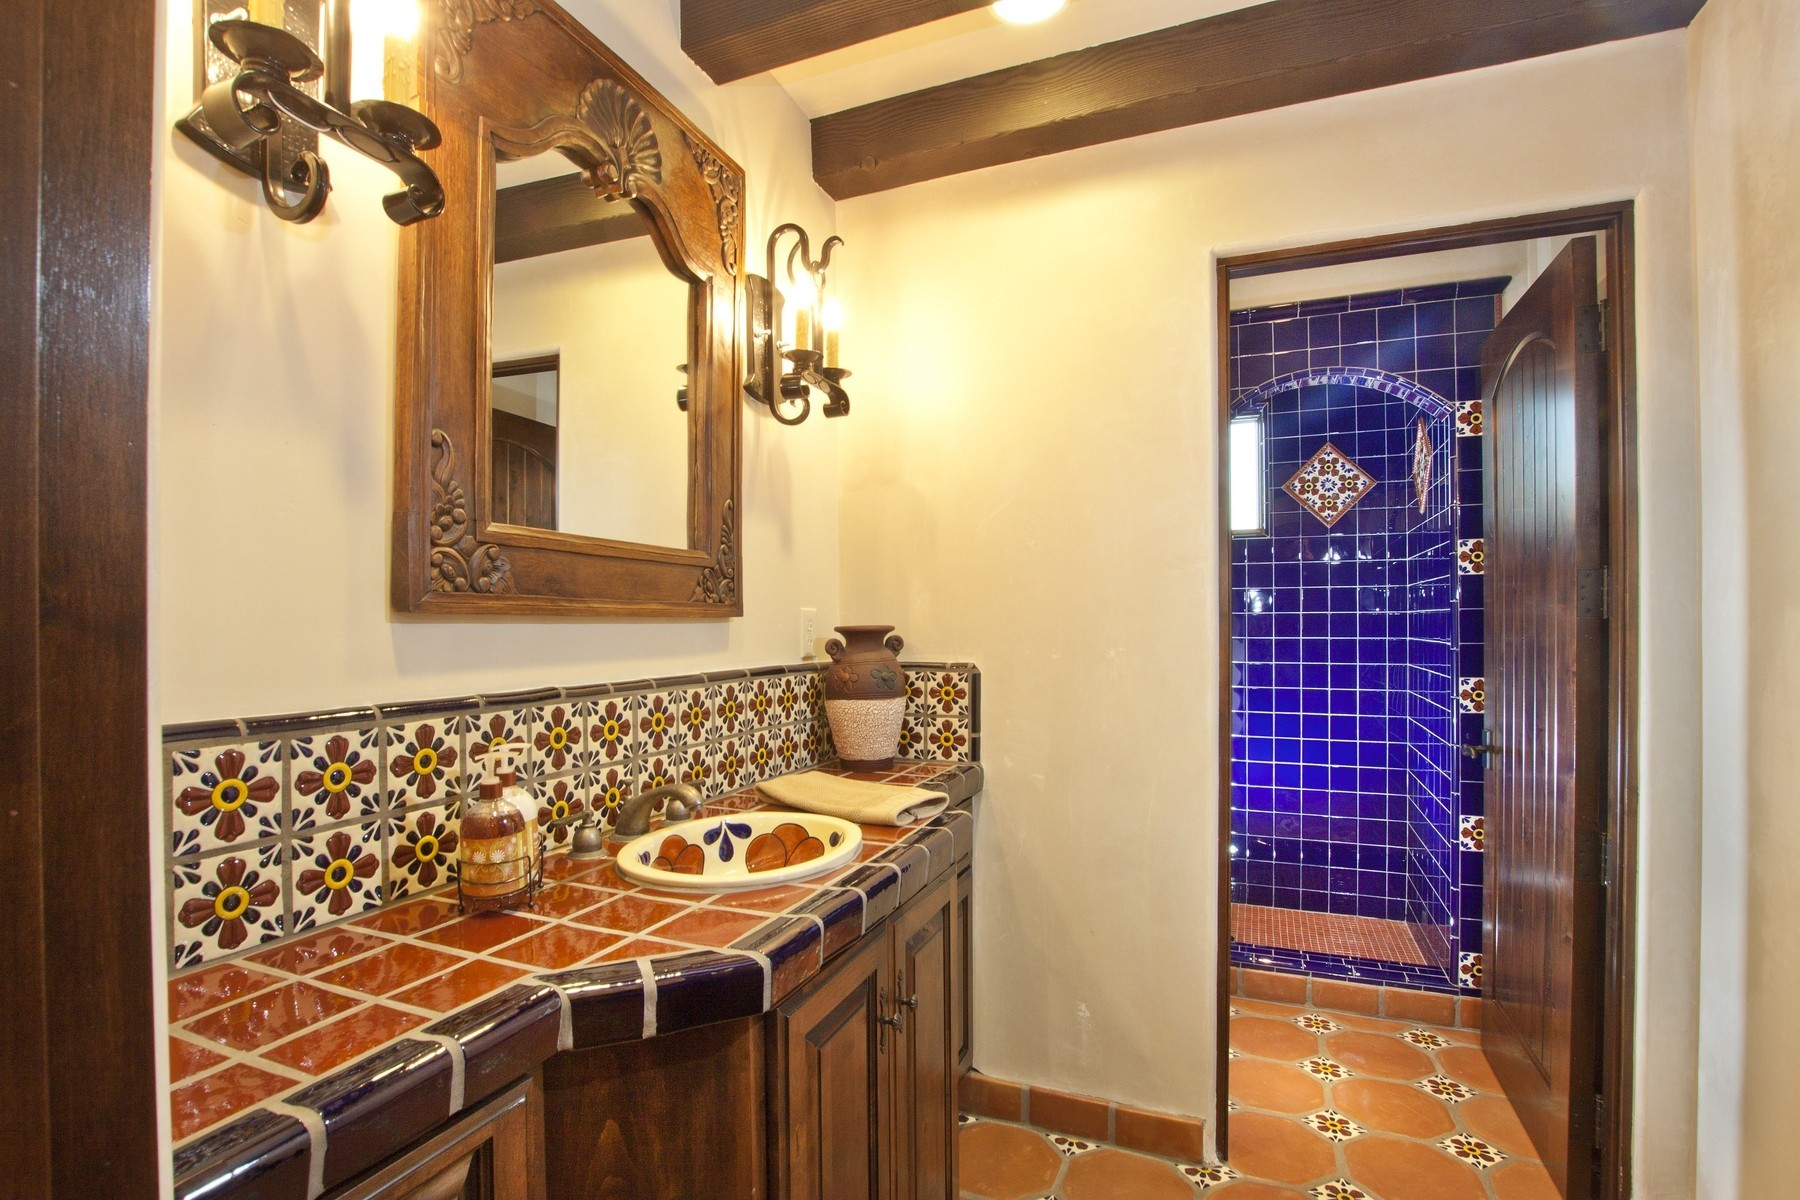 Bathrooms In Spanish Latest Luxury Bathroom Accessories Dkbzaweb Layout